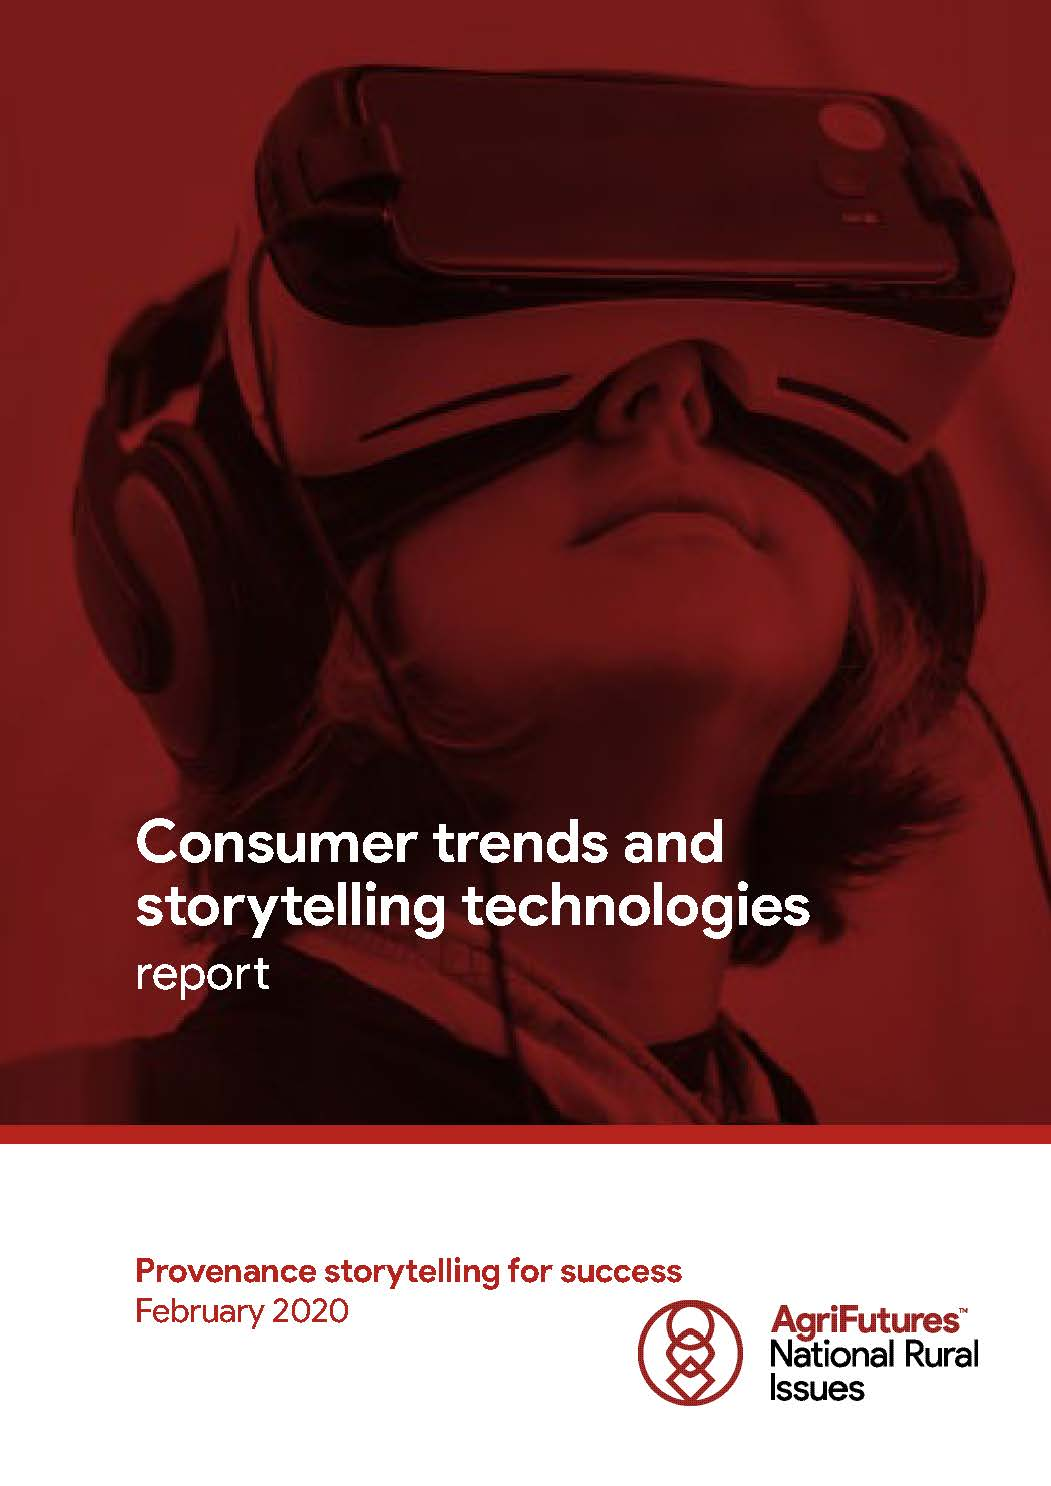 Consumer trends, technologies and platforms - image